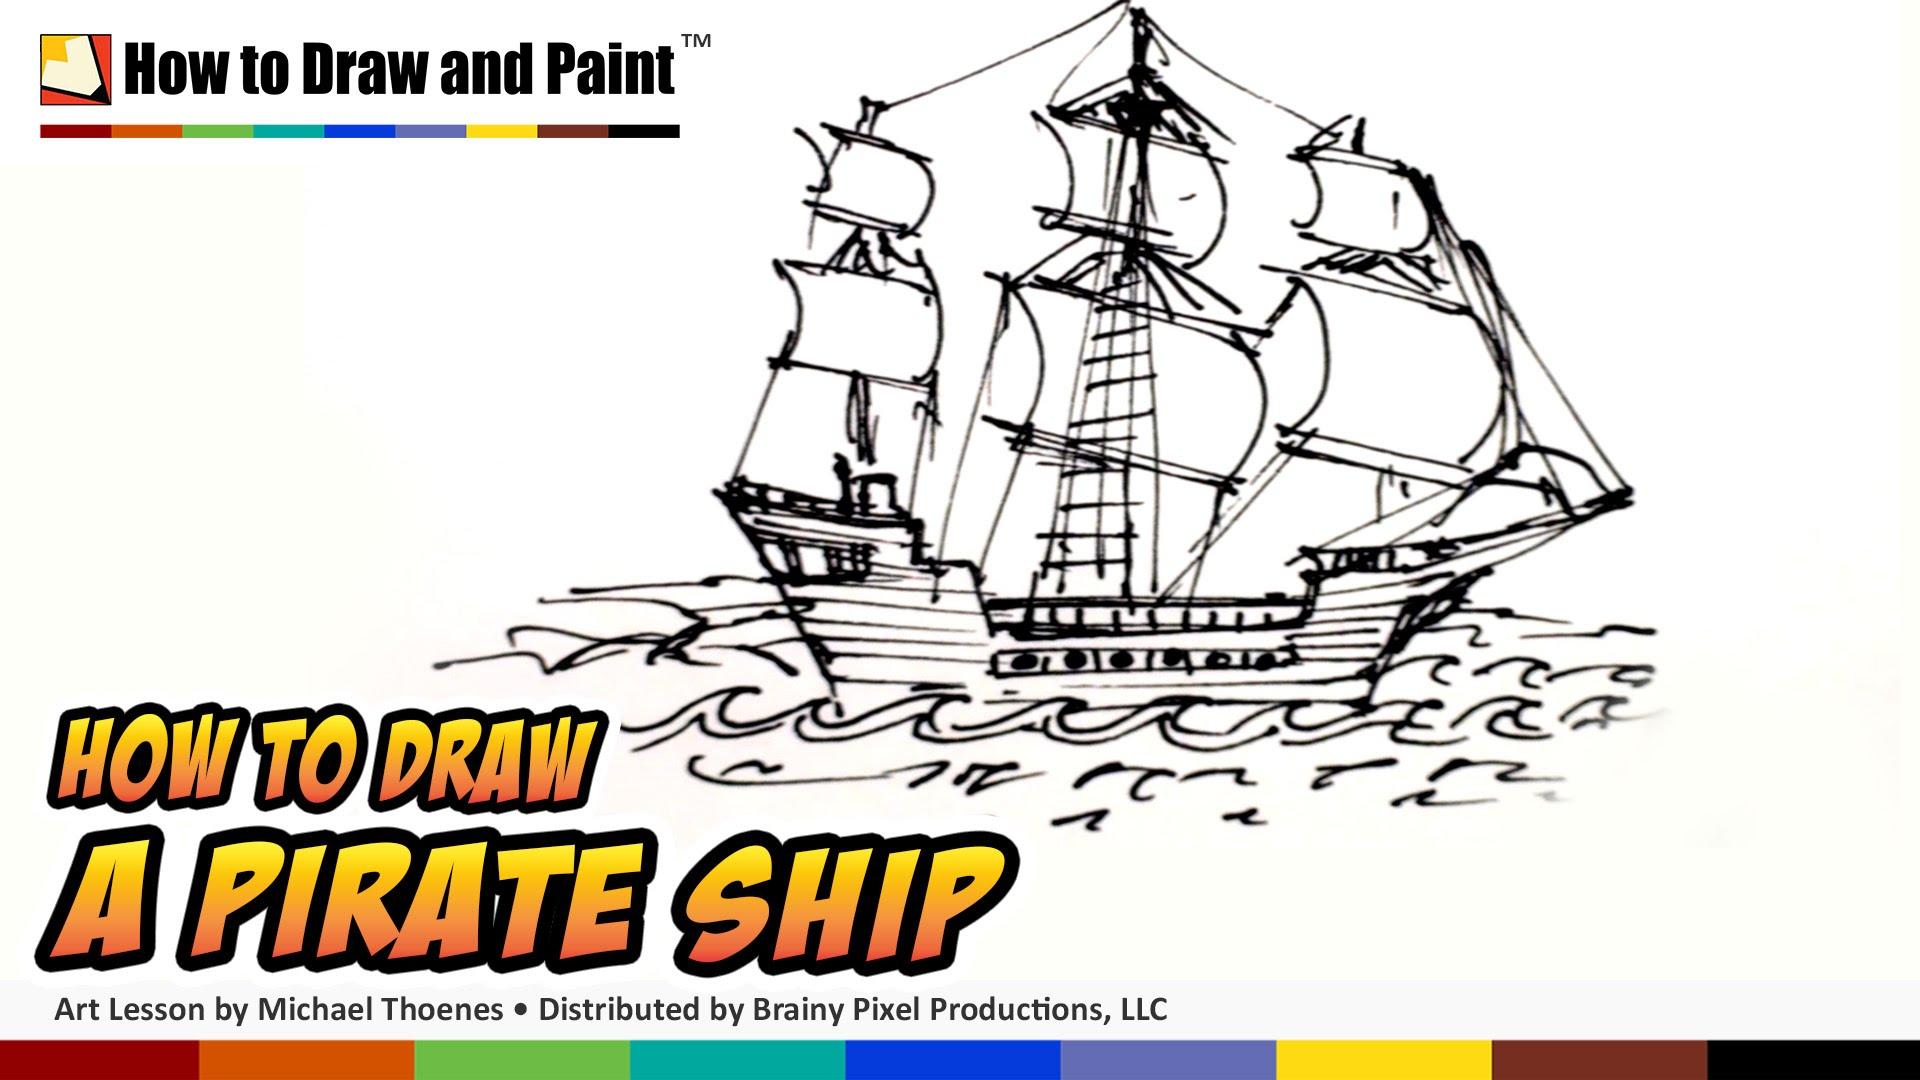 1920x1080 How To Draw A Pirate Ship Doodle